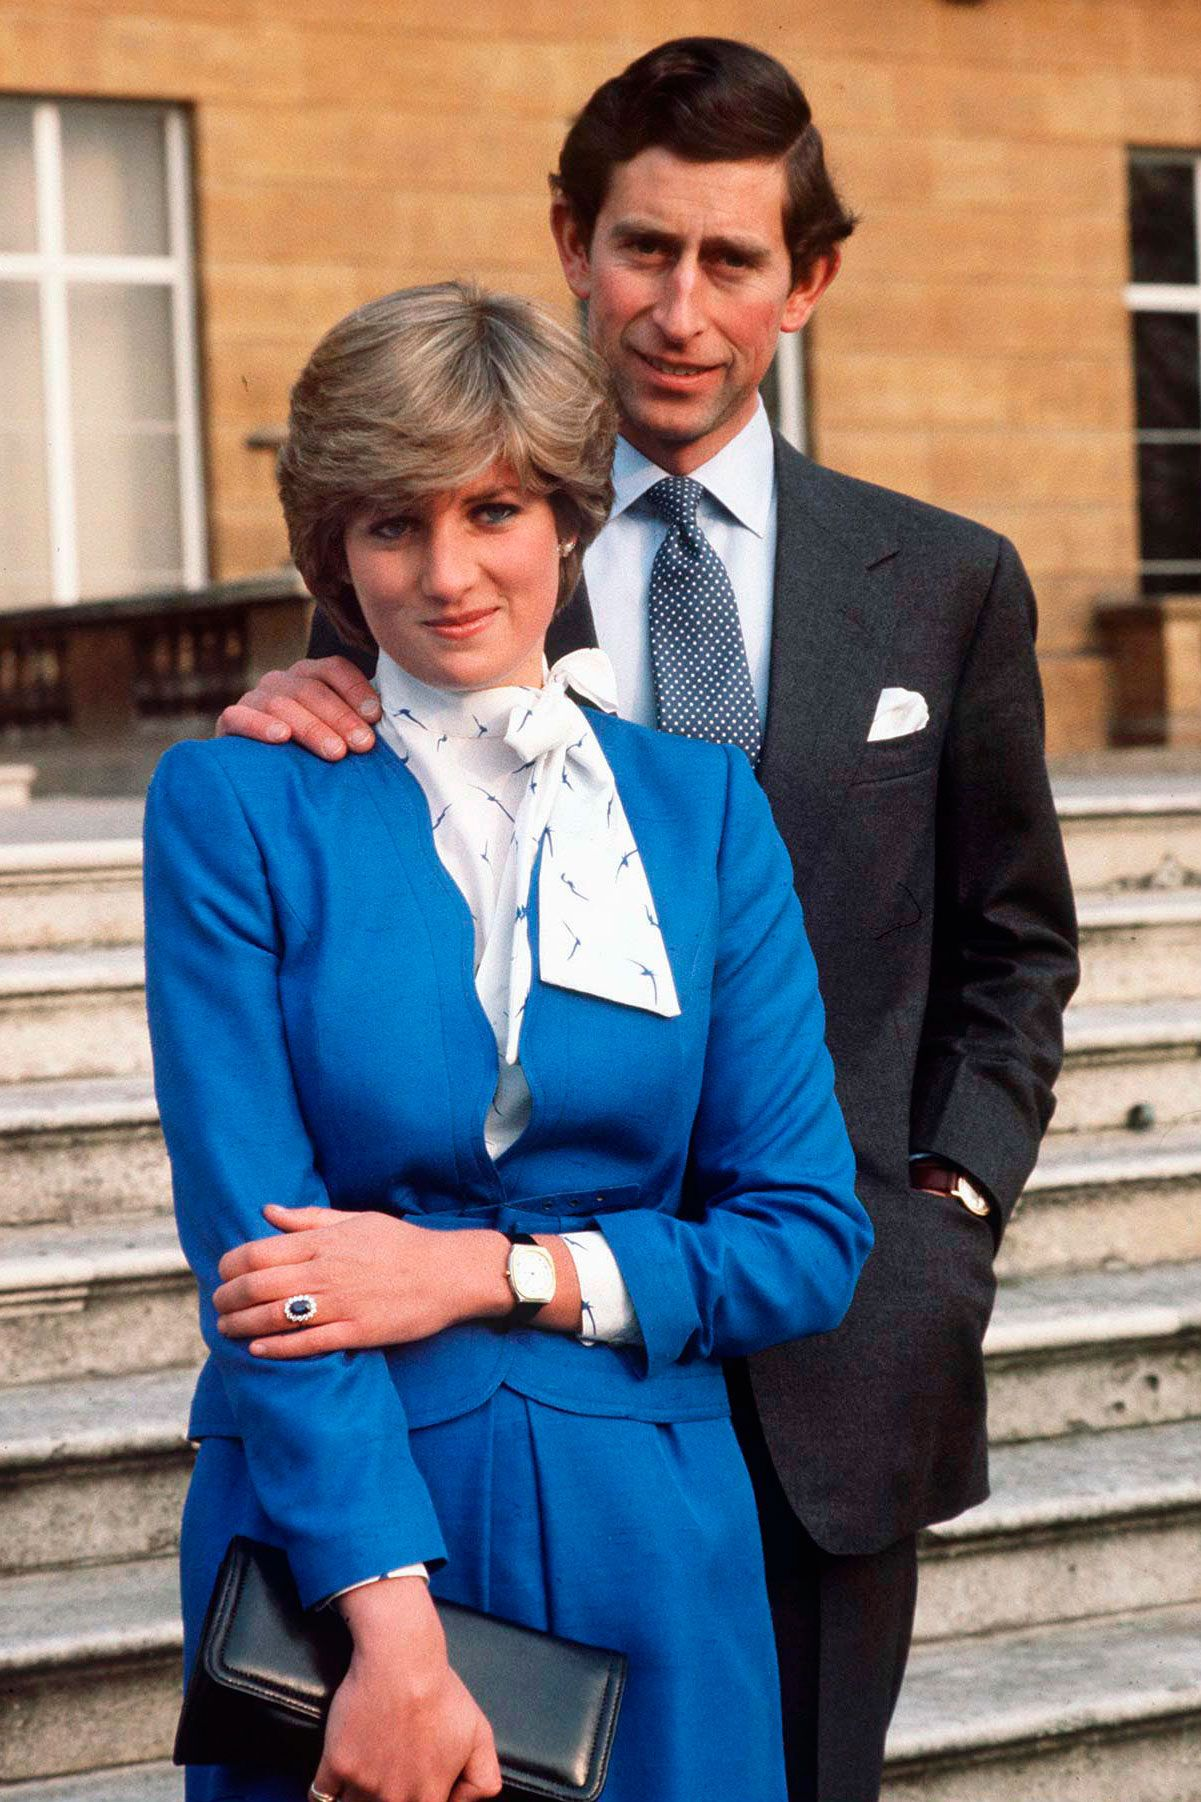 """<p>In her engagement photos, a fresh-facedLady Diana Spencer wore sapphire blue to match her engagement ring, and the photos were an instant hit.</p><p><strong data-redactor-tag=""""strong"""" data-verified=""""redactor"""">RELATED: </strong><a href=""""http://www.redbookmag.com/love-sex/relationships/a50421/princess-diana-cbs-documentary/"""" data-tracking-id=""""recirc-text-link"""" target=""""_blank""""><strong data-redactor-tag=""""strong"""" data-verified=""""redactor"""">Charles and DianaOnly Met 12 Times Before Getting Married</strong></a> </p>"""